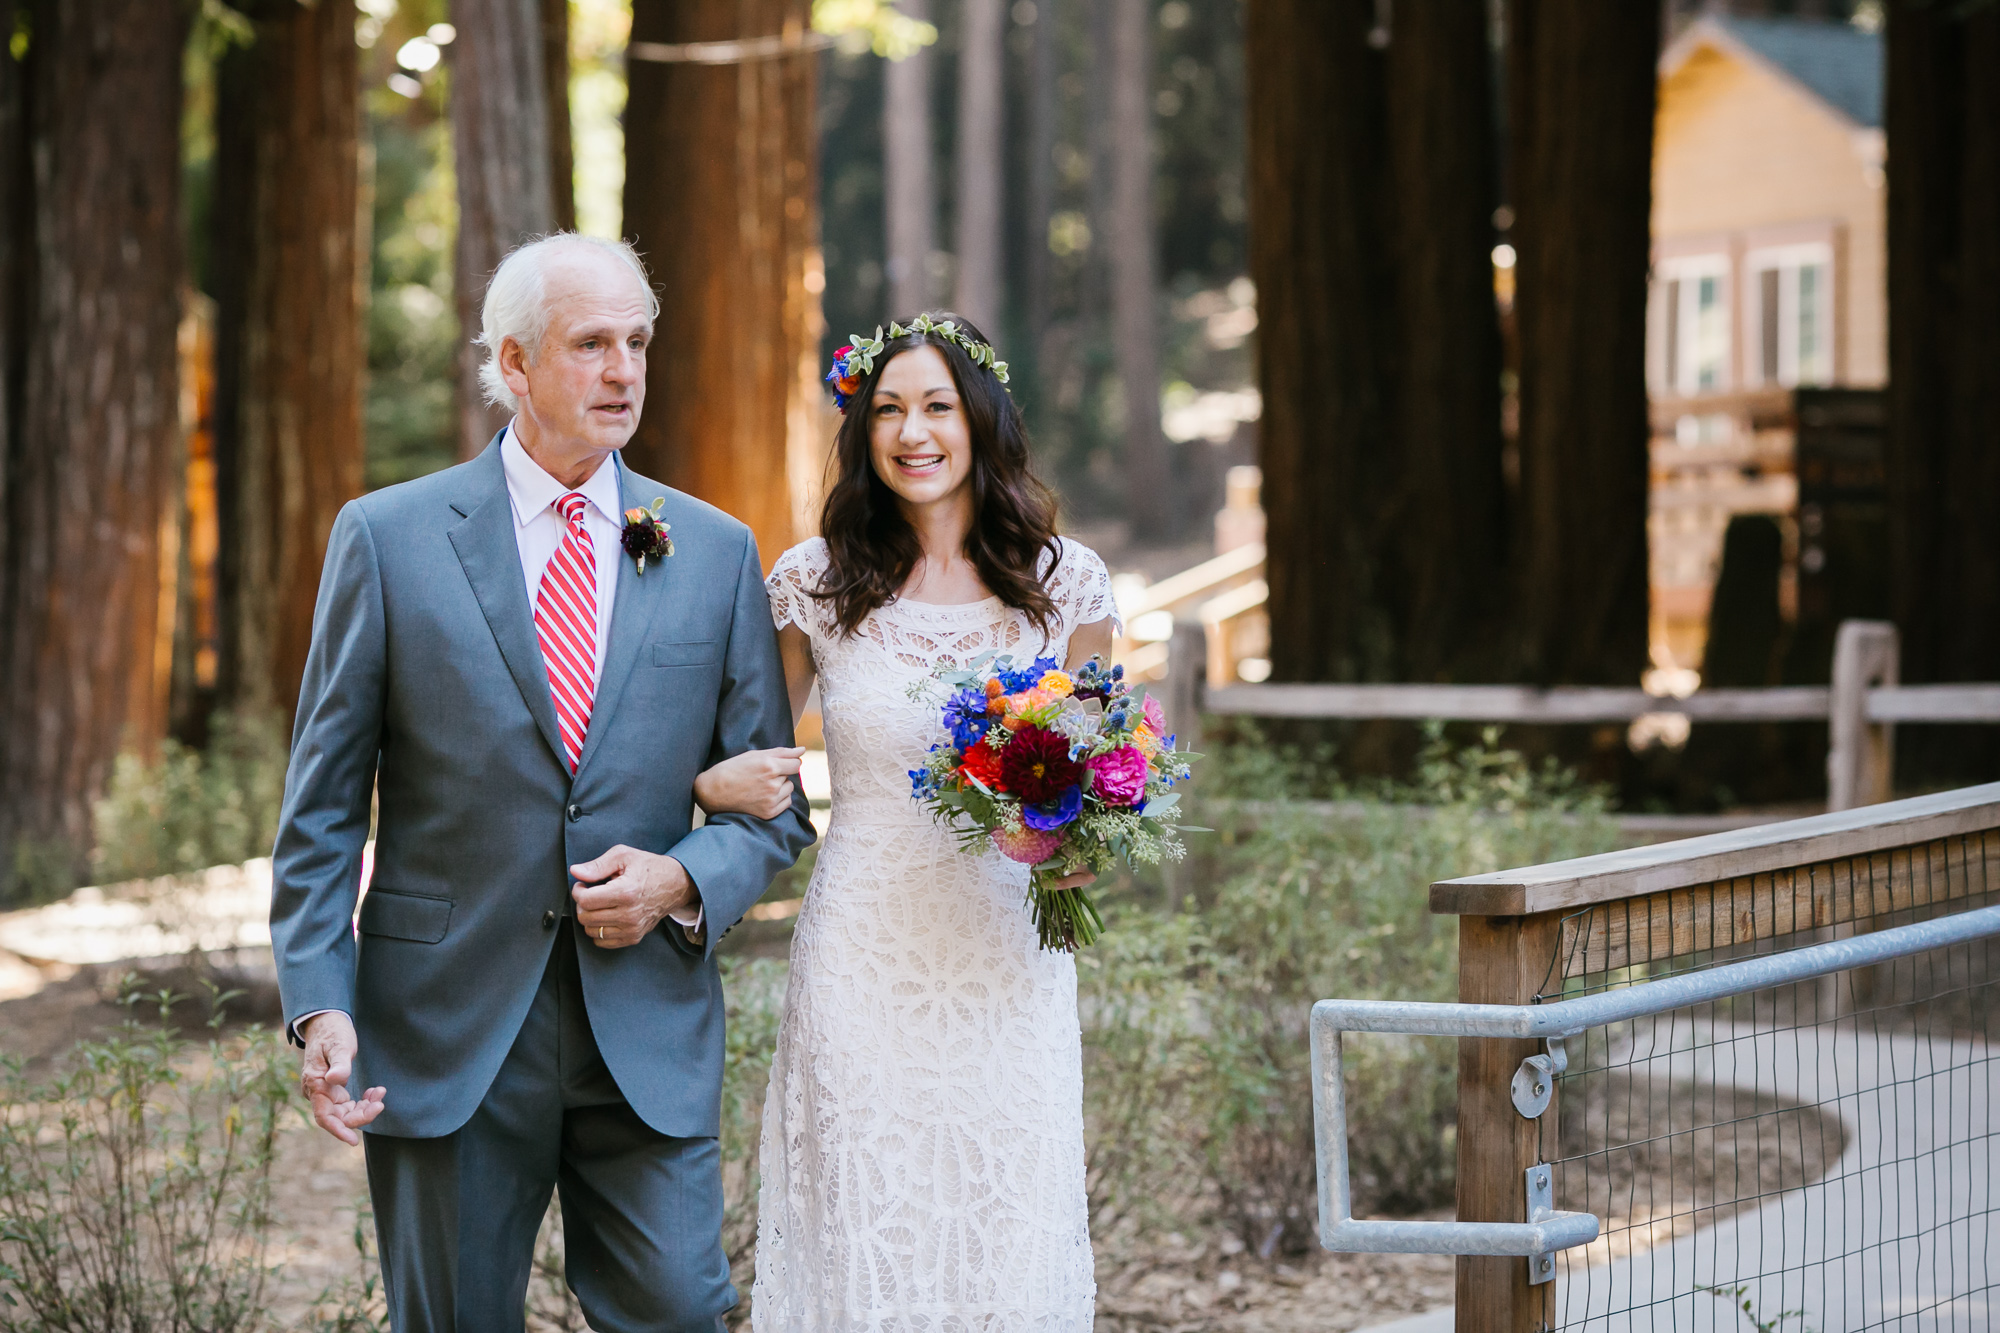 Bride in lace wedding dress and colorful flowers walks arm in arm with her dad